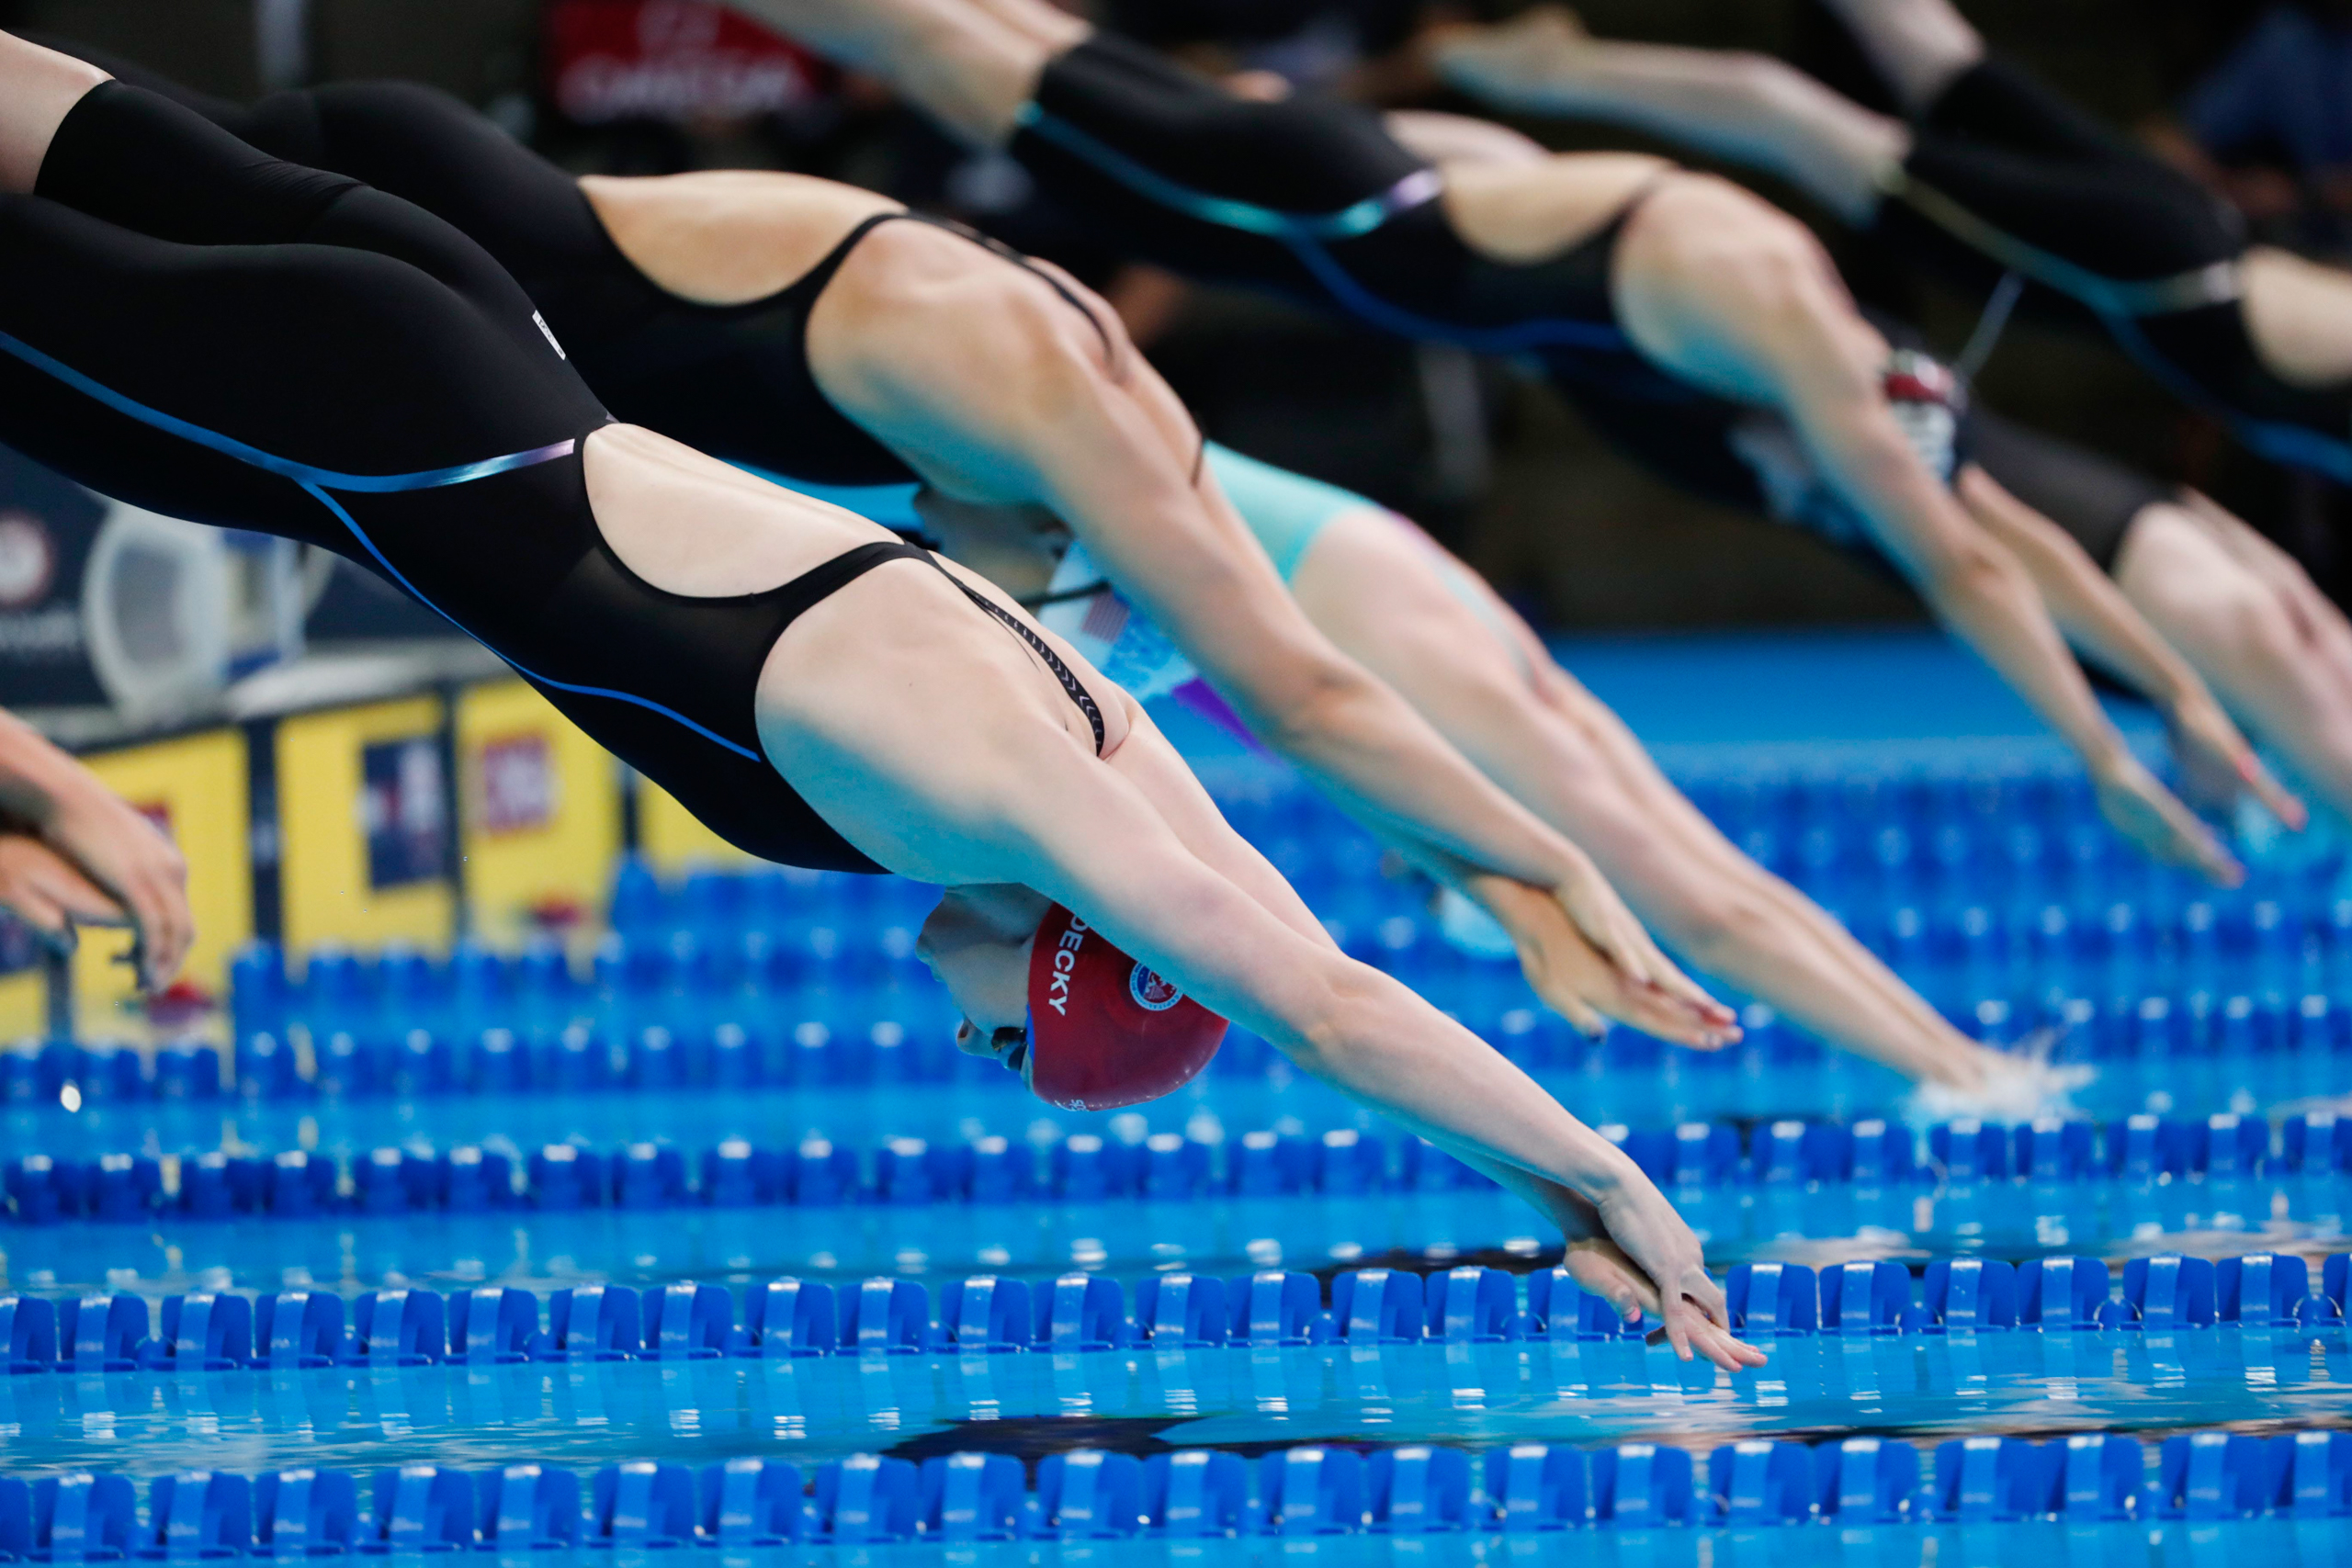 """<strong>Katie Ledecky, Swimming, USA</strong>""""I can do this."""" It's what Ledecky, 19, tells herself when her lungs are burning and her muscles are screaming and she still has dozens of laps to go. It's what she told herself four years ago in London, where she surged past the heavy favorites to win her first Olympic gold.                                   """"I can do this"""" can be a mixed blessing. """"She fails spectacularly and frequently,"""" says her coach Bruce Gemmell. That's because Ledecky isn't afraid of pushing her limits, shooting for a seemingly impossible pace. But it's also what propelled her to make history as the first to swim, and win, all four freestyle distances—200 m, 400 m, 800 m and 1,500 m—at the same meet, last year's world championships. That's the aquatic version of beating Usain Bolt and winning the marathon. """"I'm glad I'm not in her training group, because she literally whoops up on the boys,"""" says fellow Marylander Michael Phelps, the world's most decorated Olympian.                                    Even scarier? Ledecky, part of a deep U.S. team that includes fellow 2012 breakout Missy Franklin, hasn't hit her peak. """"If she puts everything together, she'll be like Secretariat at the Belmont in 1973—a onceinageneration thing,"""" says Gemmell. Will it happen in Rio? All Ledecky has to tell herself is """"I can do this."""" —A.P."""